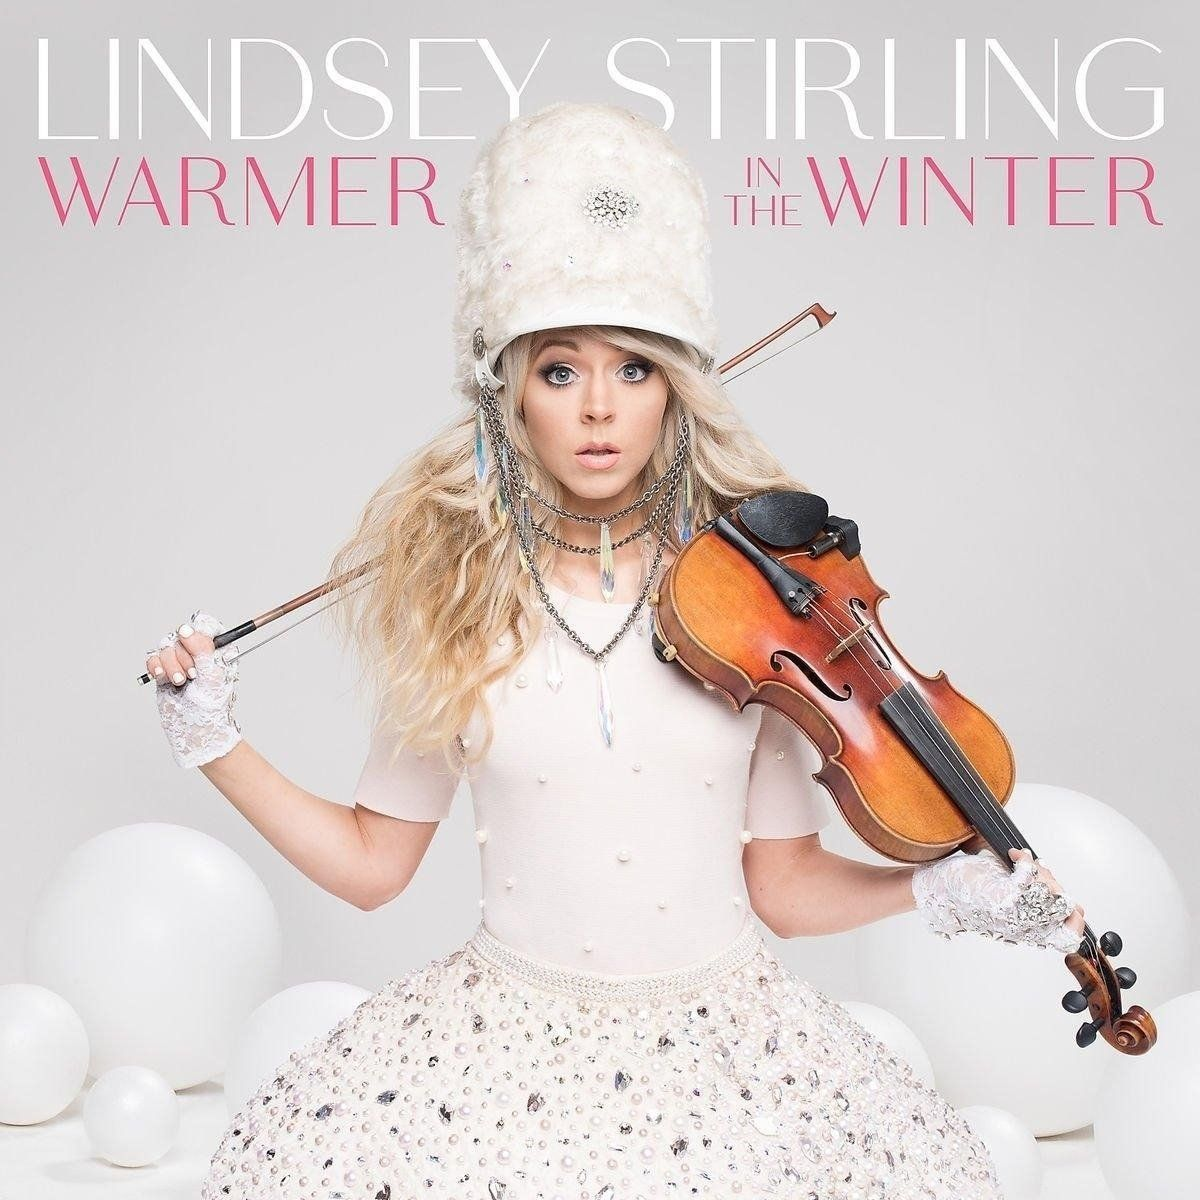 Lindsey Stirling - Warmer In The Winter album cover